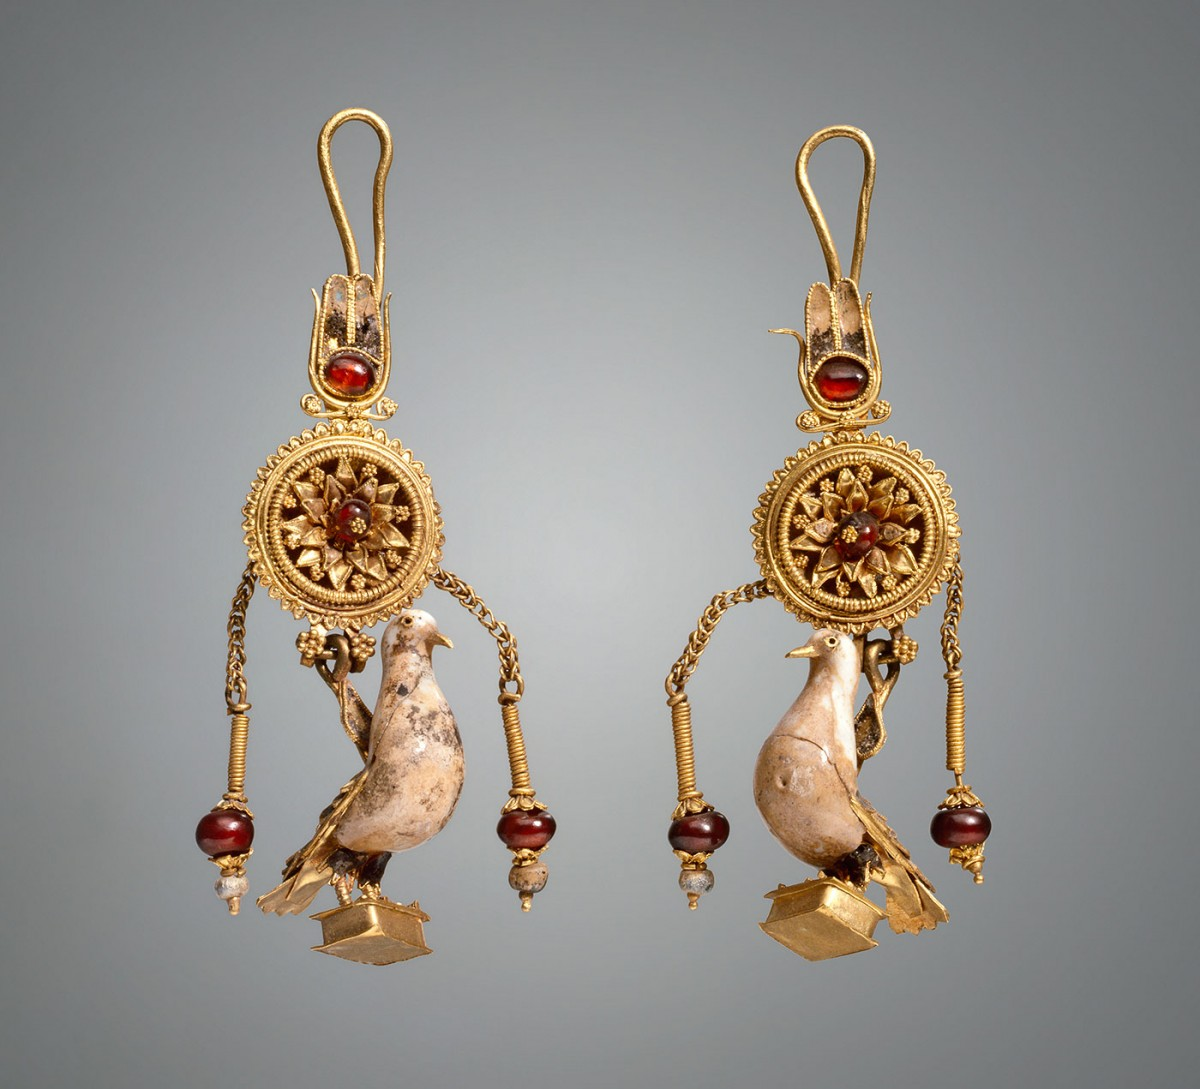 Earrings with pendants in the form of a dove. 2nd c. BC. Gold, hessonite, glass. Height 6.3/6.5 cm. Credit: State Hermitage Museum, St Petersburg.